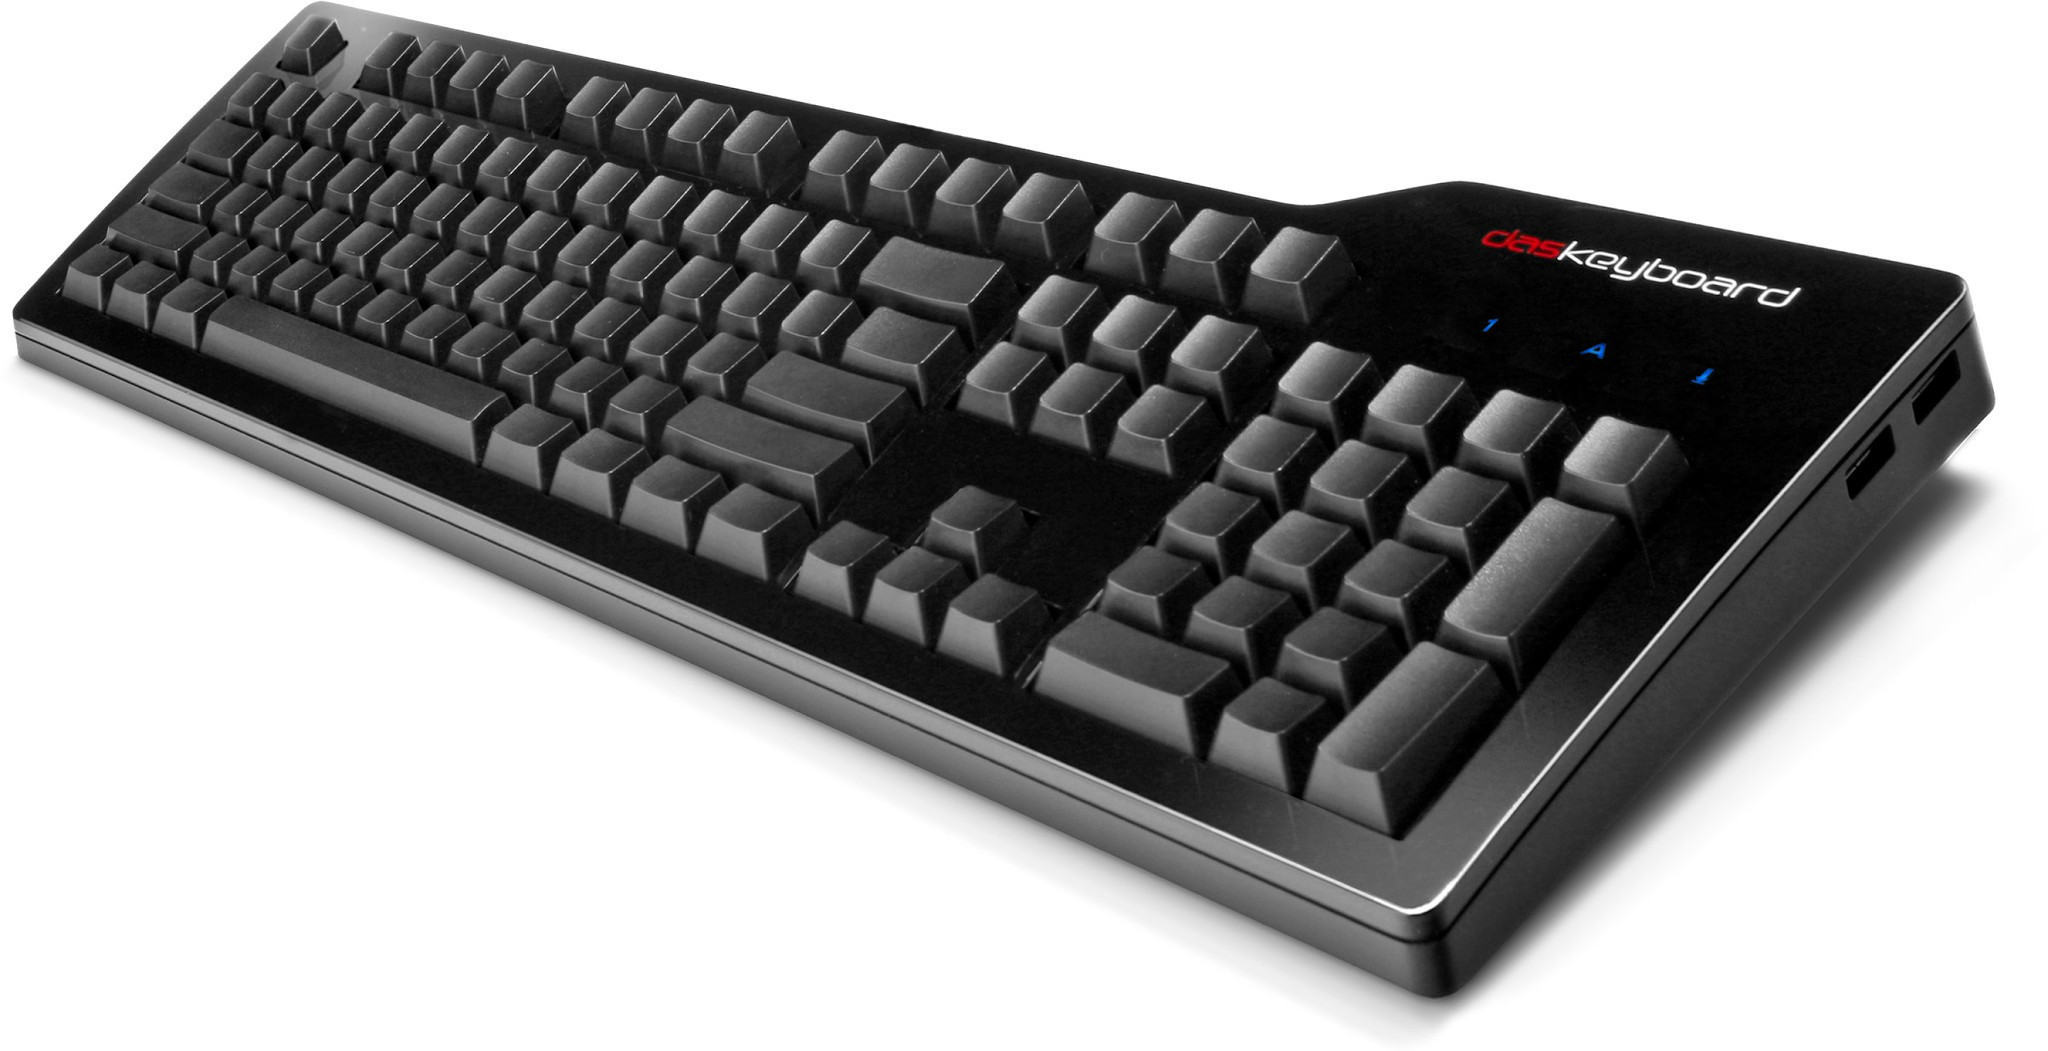 Why should you invest in a high quality keyboard?